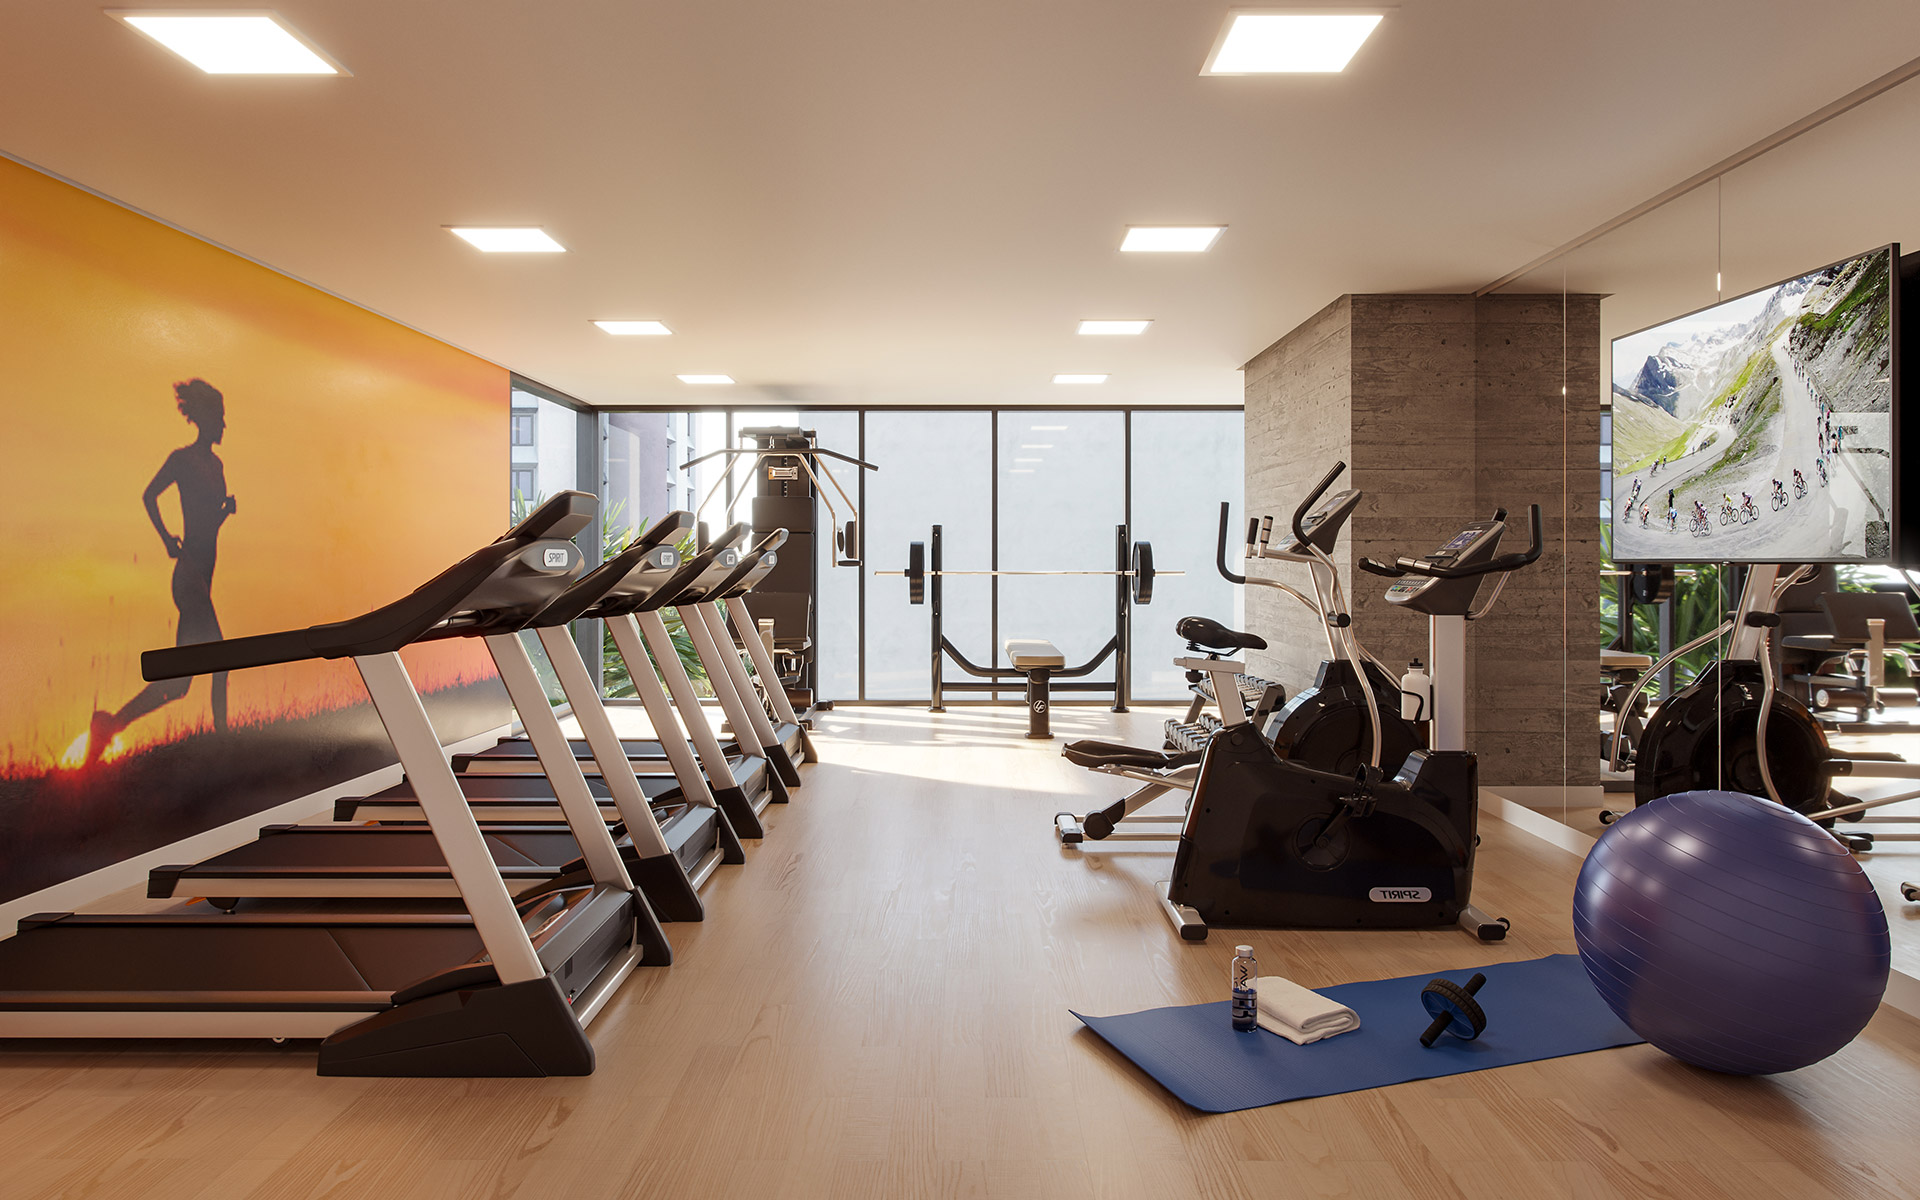 D'House Hospedagem - Perspectiva Artística do Fitness